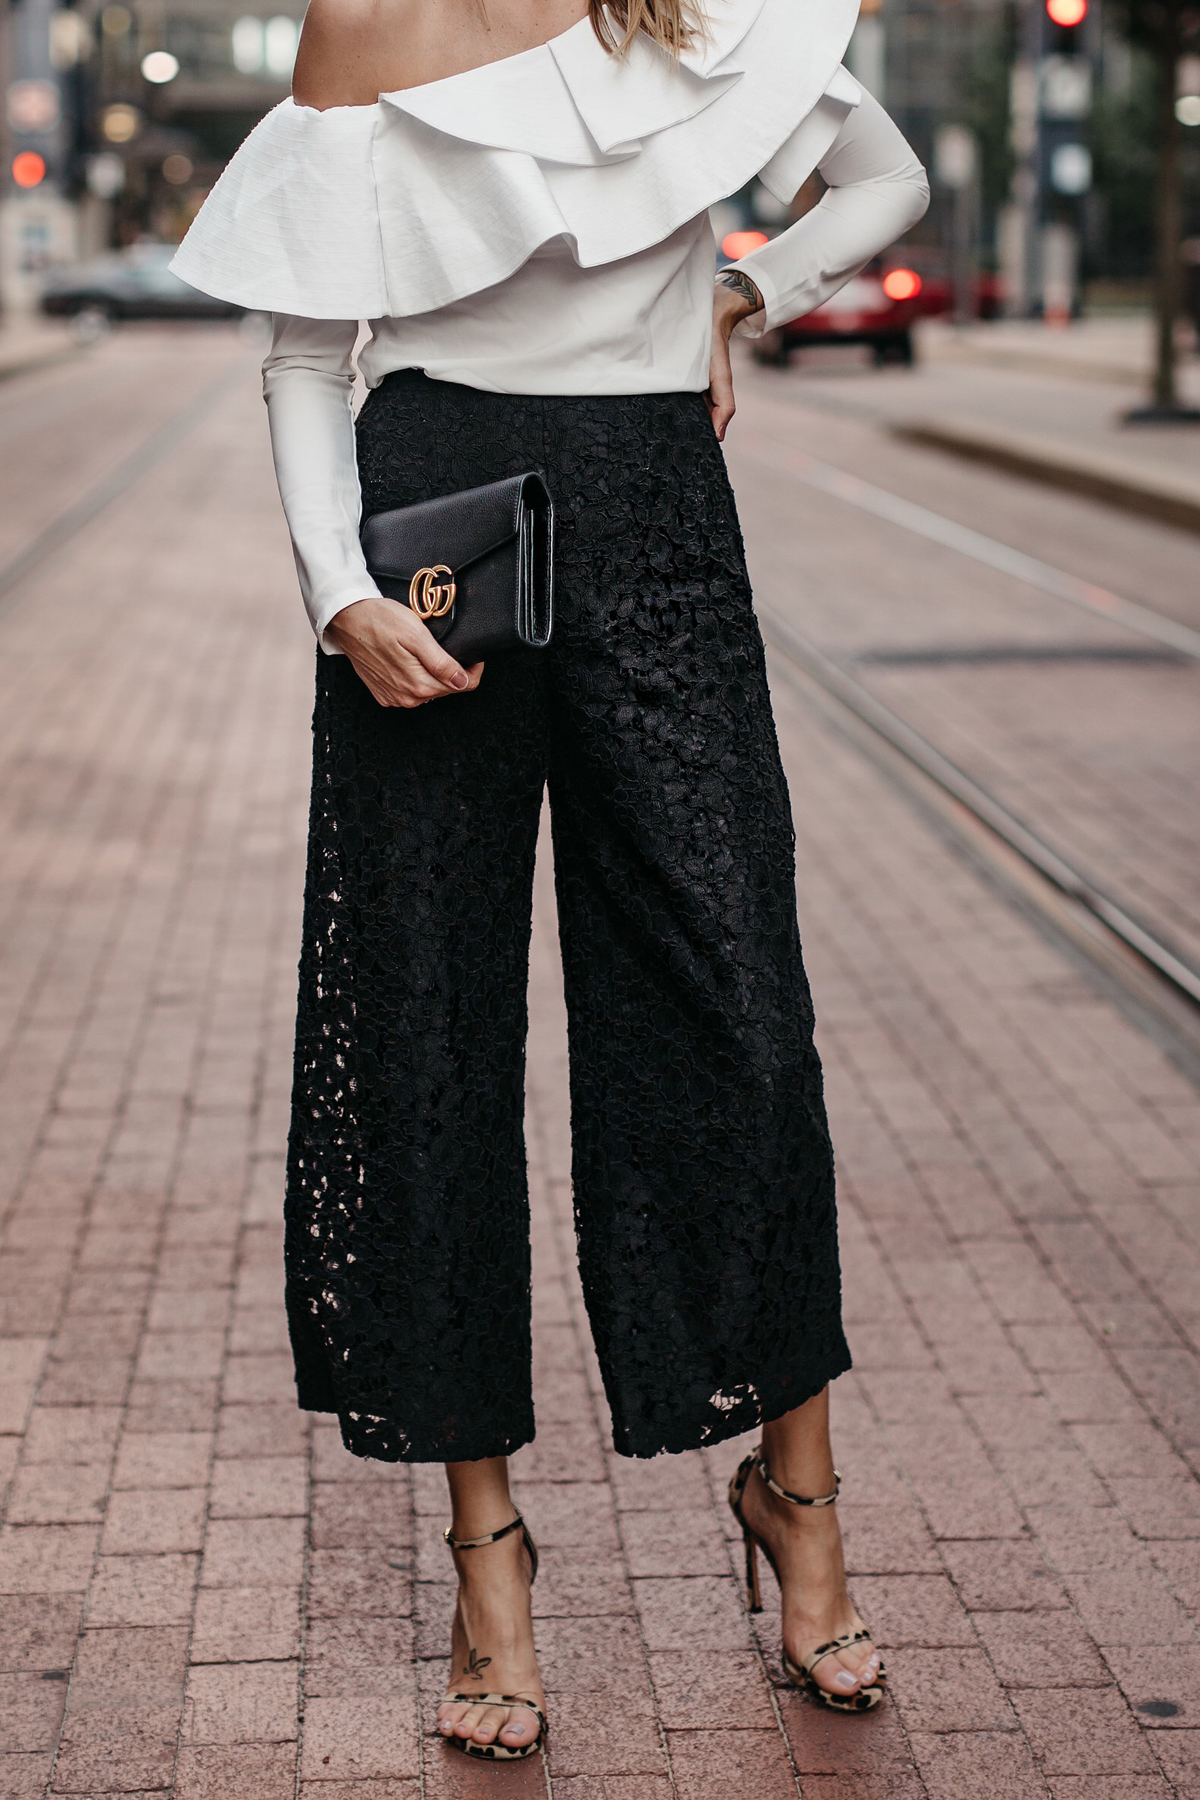 White One Shoulder Ruffle Top Black Lace Culottes Gucci Marmont Handbag Leopard Heels Fashion Jackson Dallas Blogger Fashion Blogger Street Style